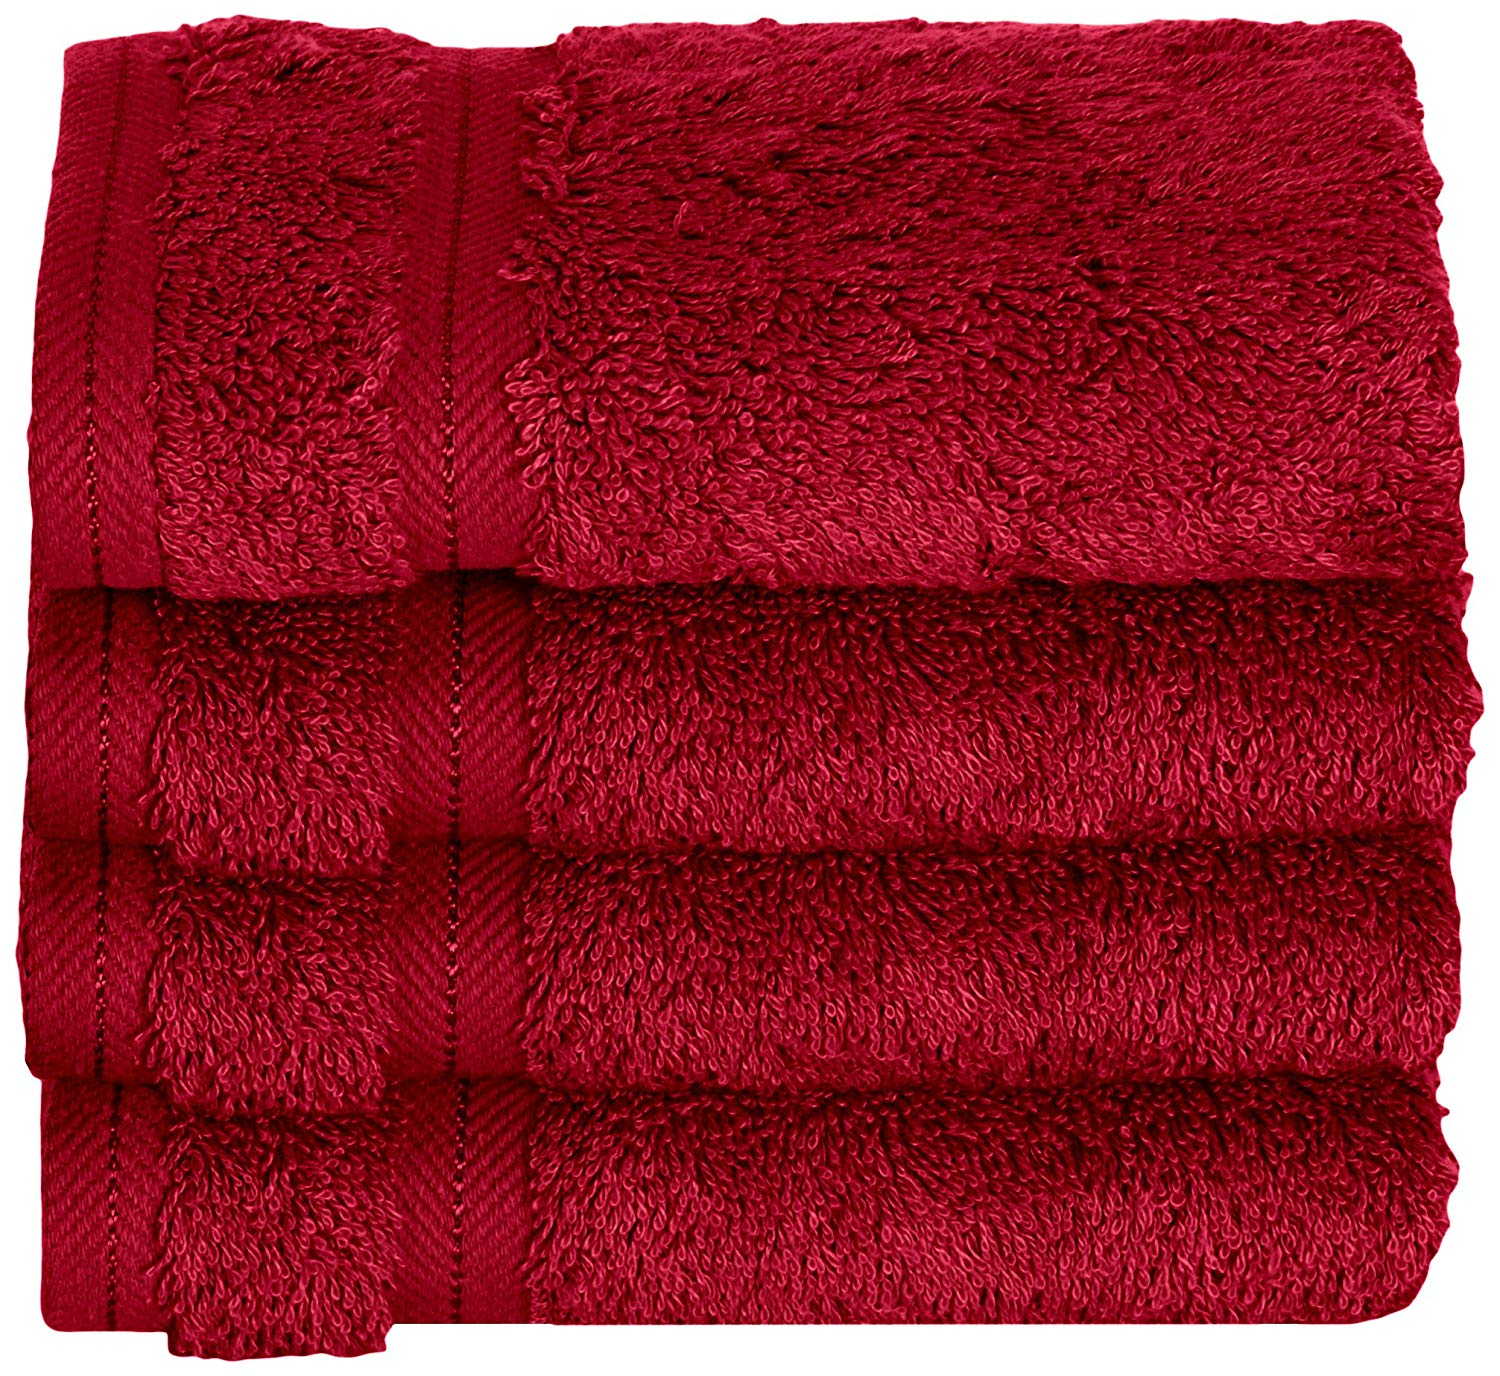 Daisy House 4 Piece Rayon Derived from Bamboo Wash Cloths, Bordeaux